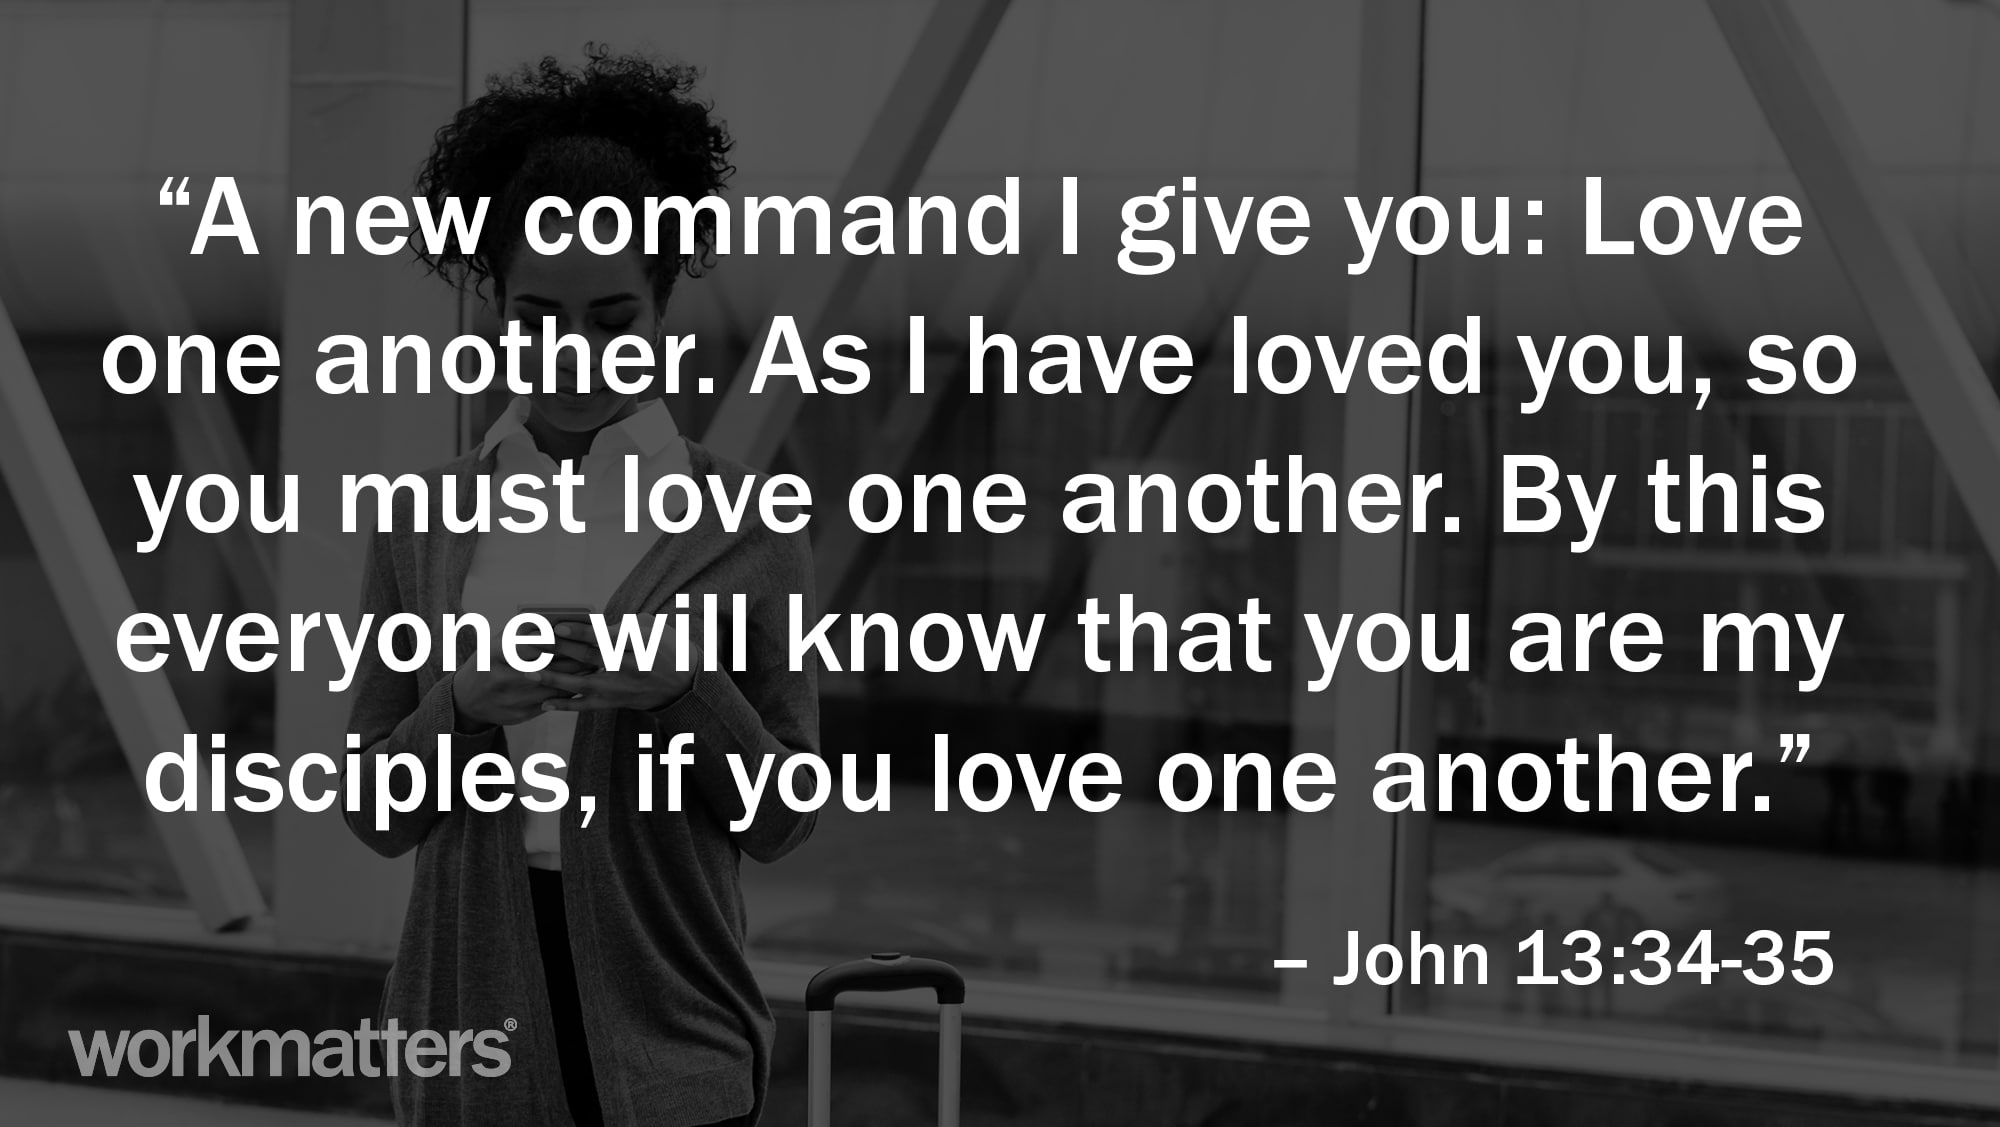 the greatest commandment at work